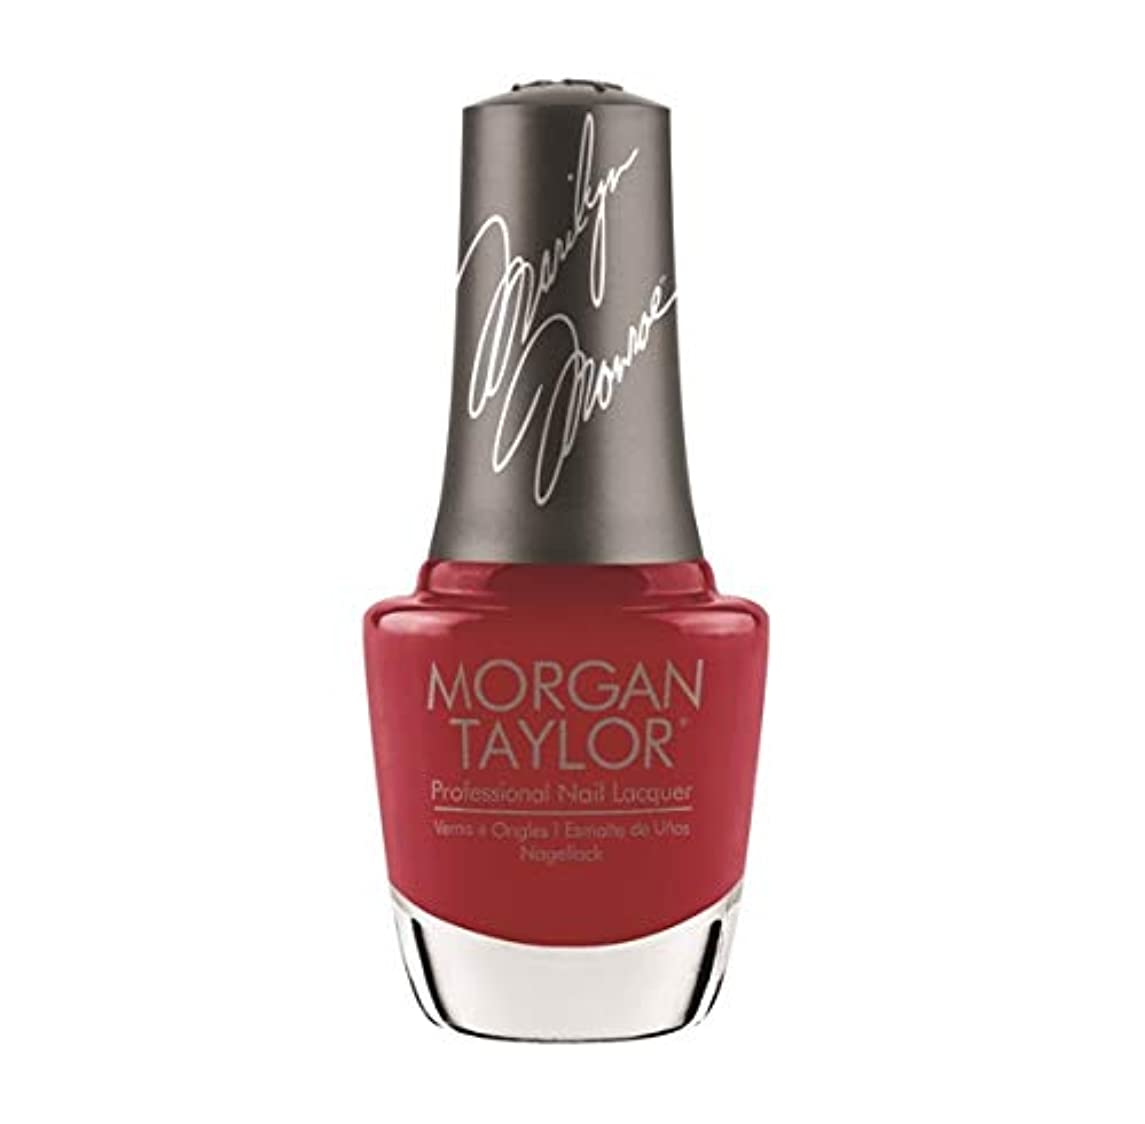 ライオネルグリーンストリート好ましい最も早いMorgan Taylor Nail Lacquer - Forever Marilyn Fall 2019 Collection - Classic Red Lips - 15ml / 0.5oz